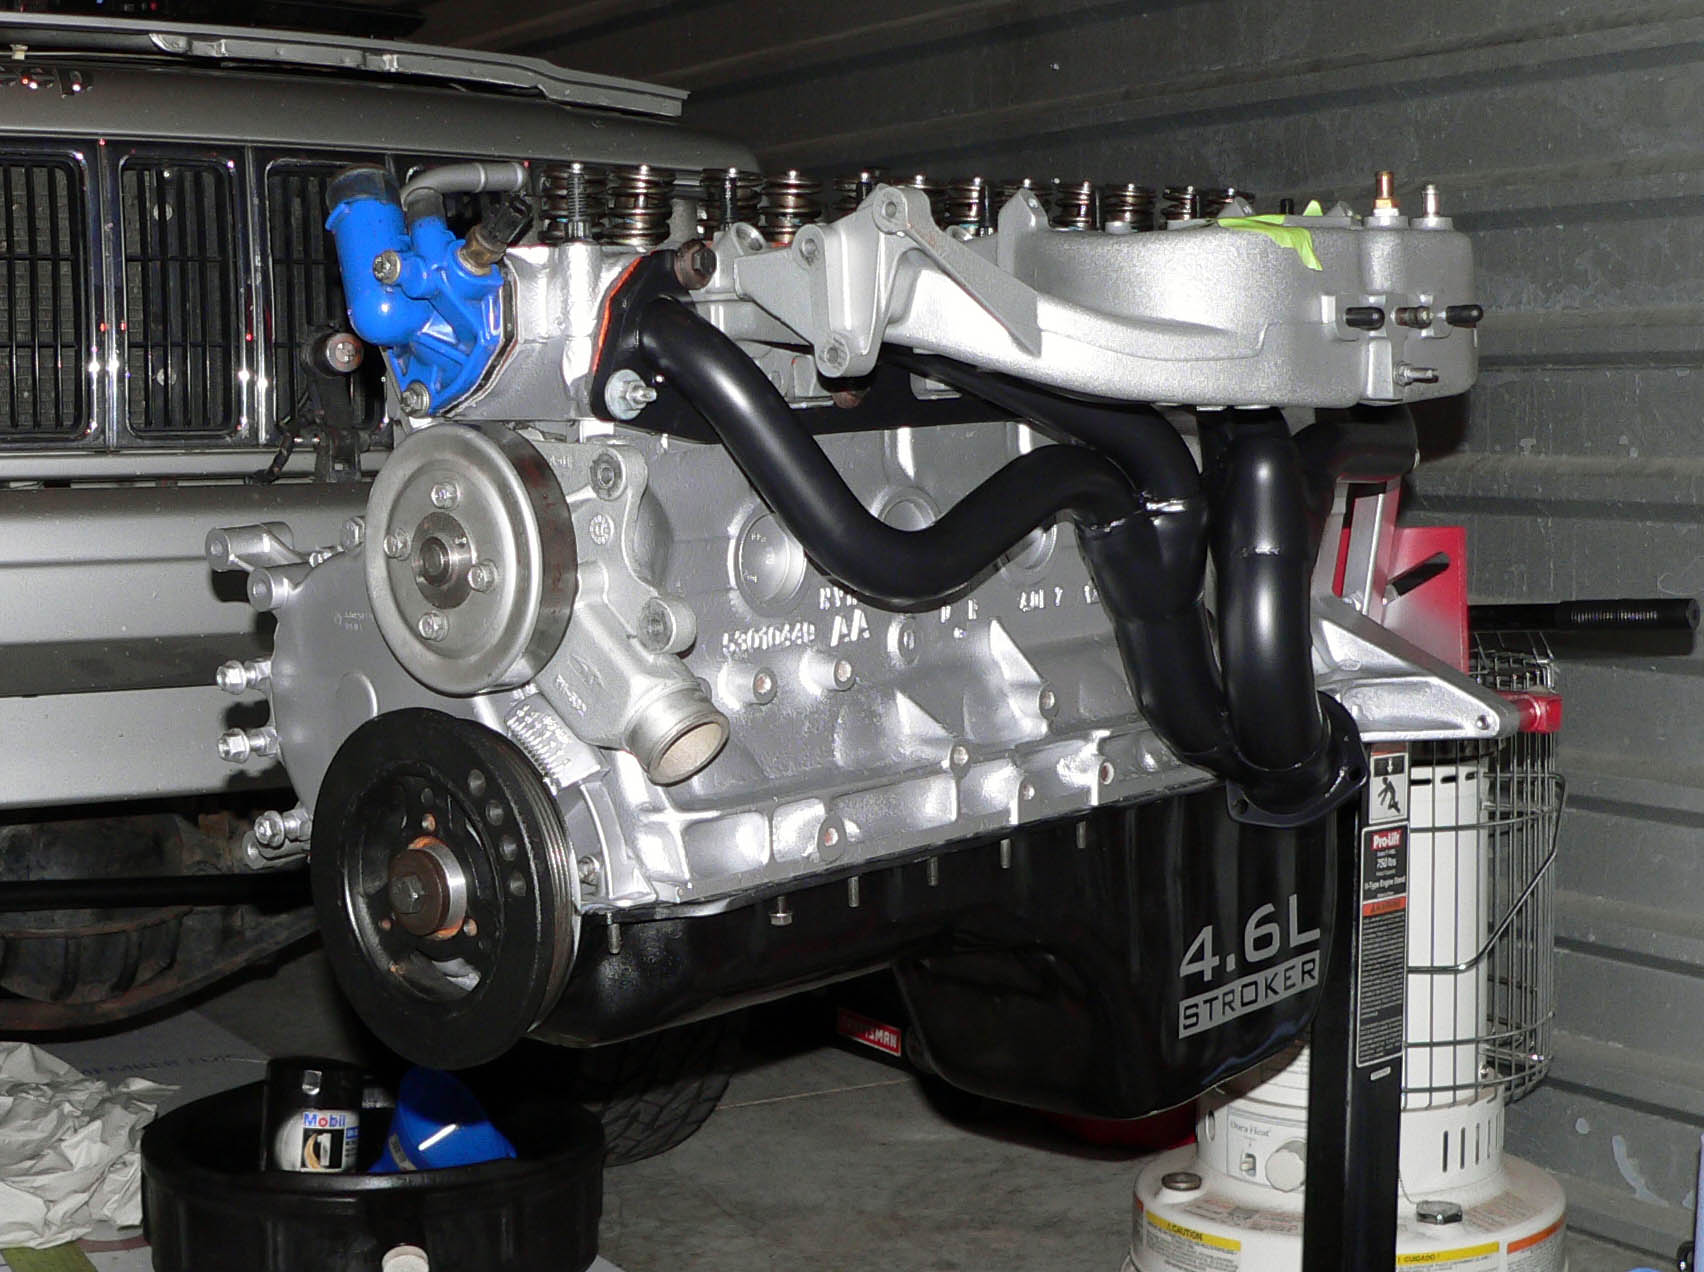 hight resolution of 4 6l stroker in the works archive naxja forums north american xj association